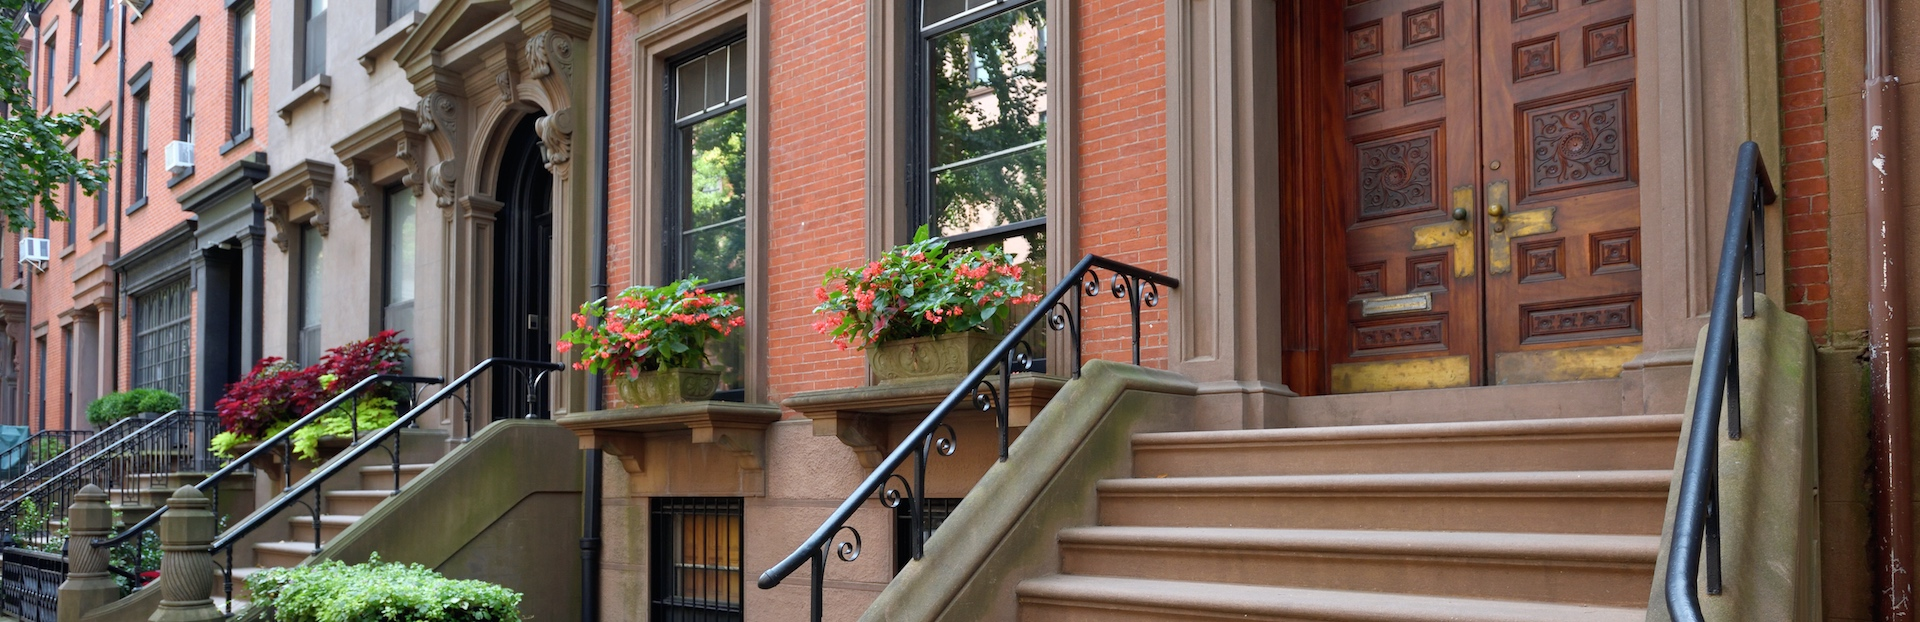 New York City audio tour: Brooklyn Heights from the Promenade to the home of Truman Capote